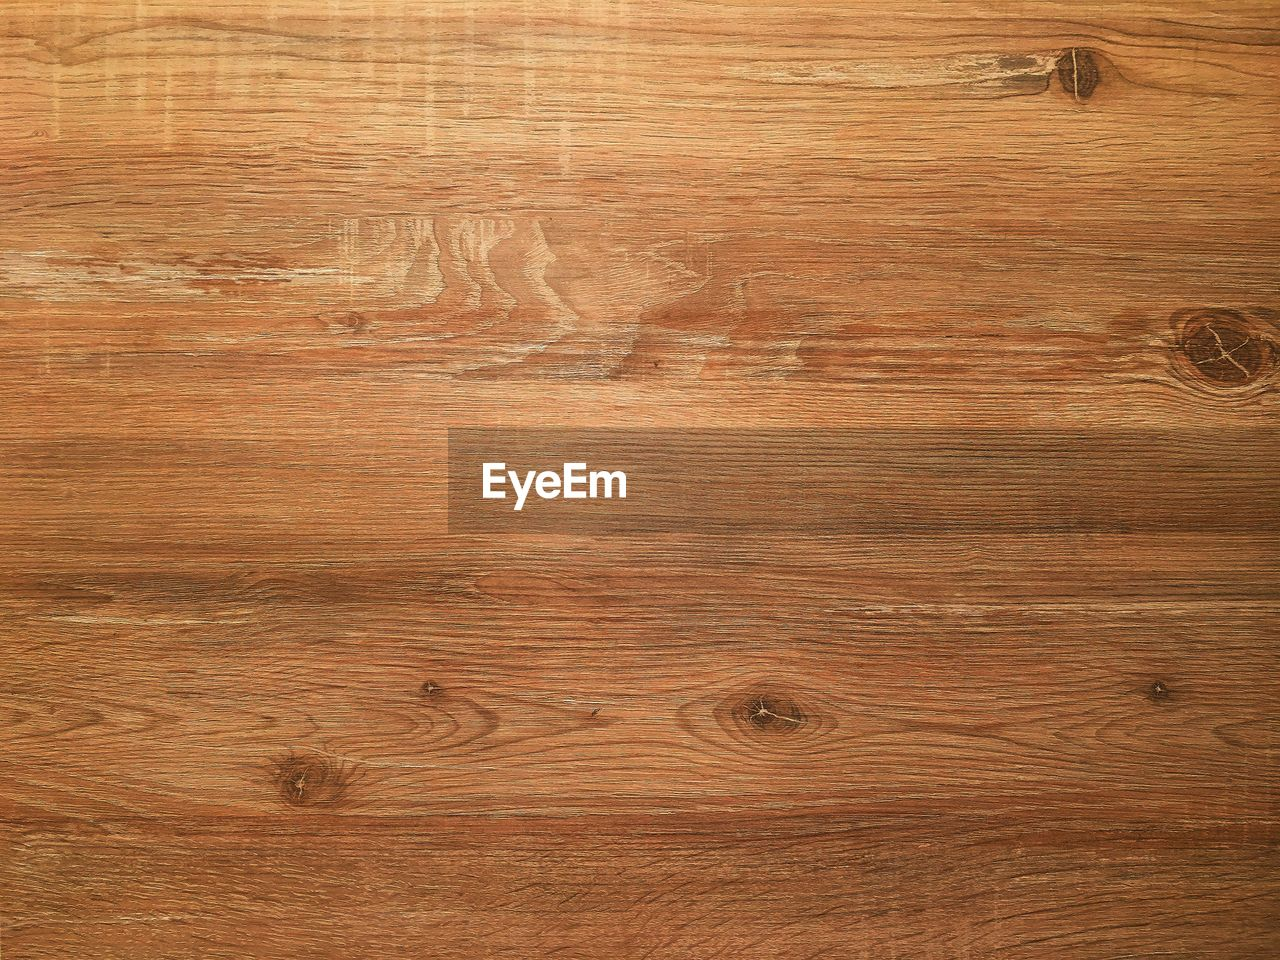 wood - material, wood, backgrounds, wood grain, brown, textured, pattern, flooring, plank, tree, hardwood, no people, knotted wood, full frame, indoors, close-up, timber, material, hardwood floor, rough, wood paneling, pine tree, pine wood, dark, textured effect, surface level, parquet floor